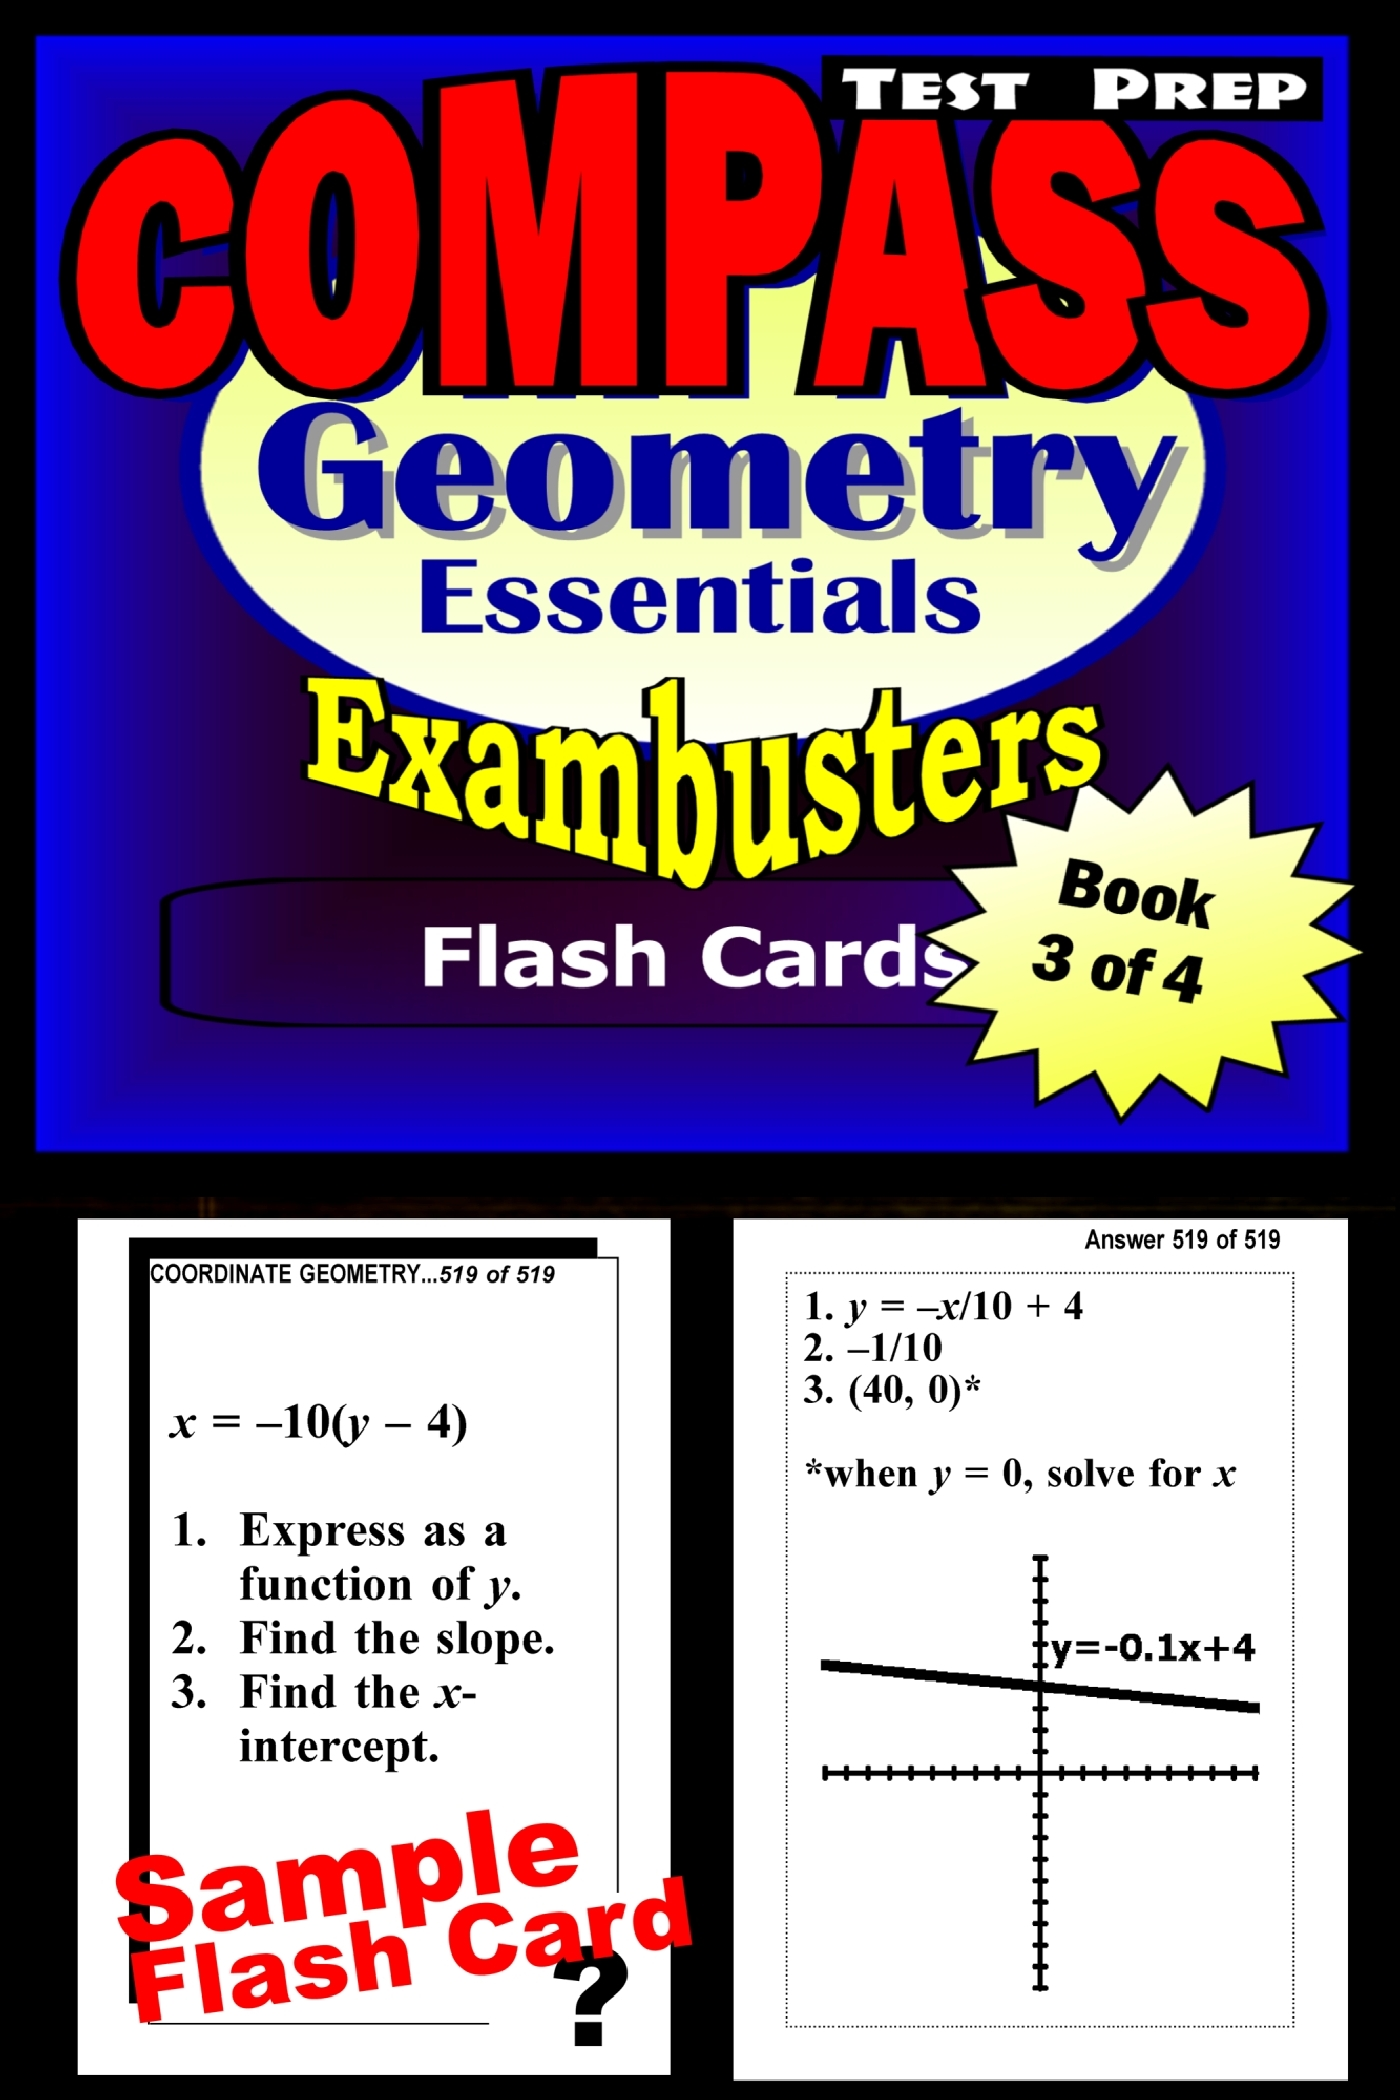 COMPASS Test Prep Geometry Review--Exambusters Flash Cards--Workbook 3 of 4: Compass Exam Study Guide